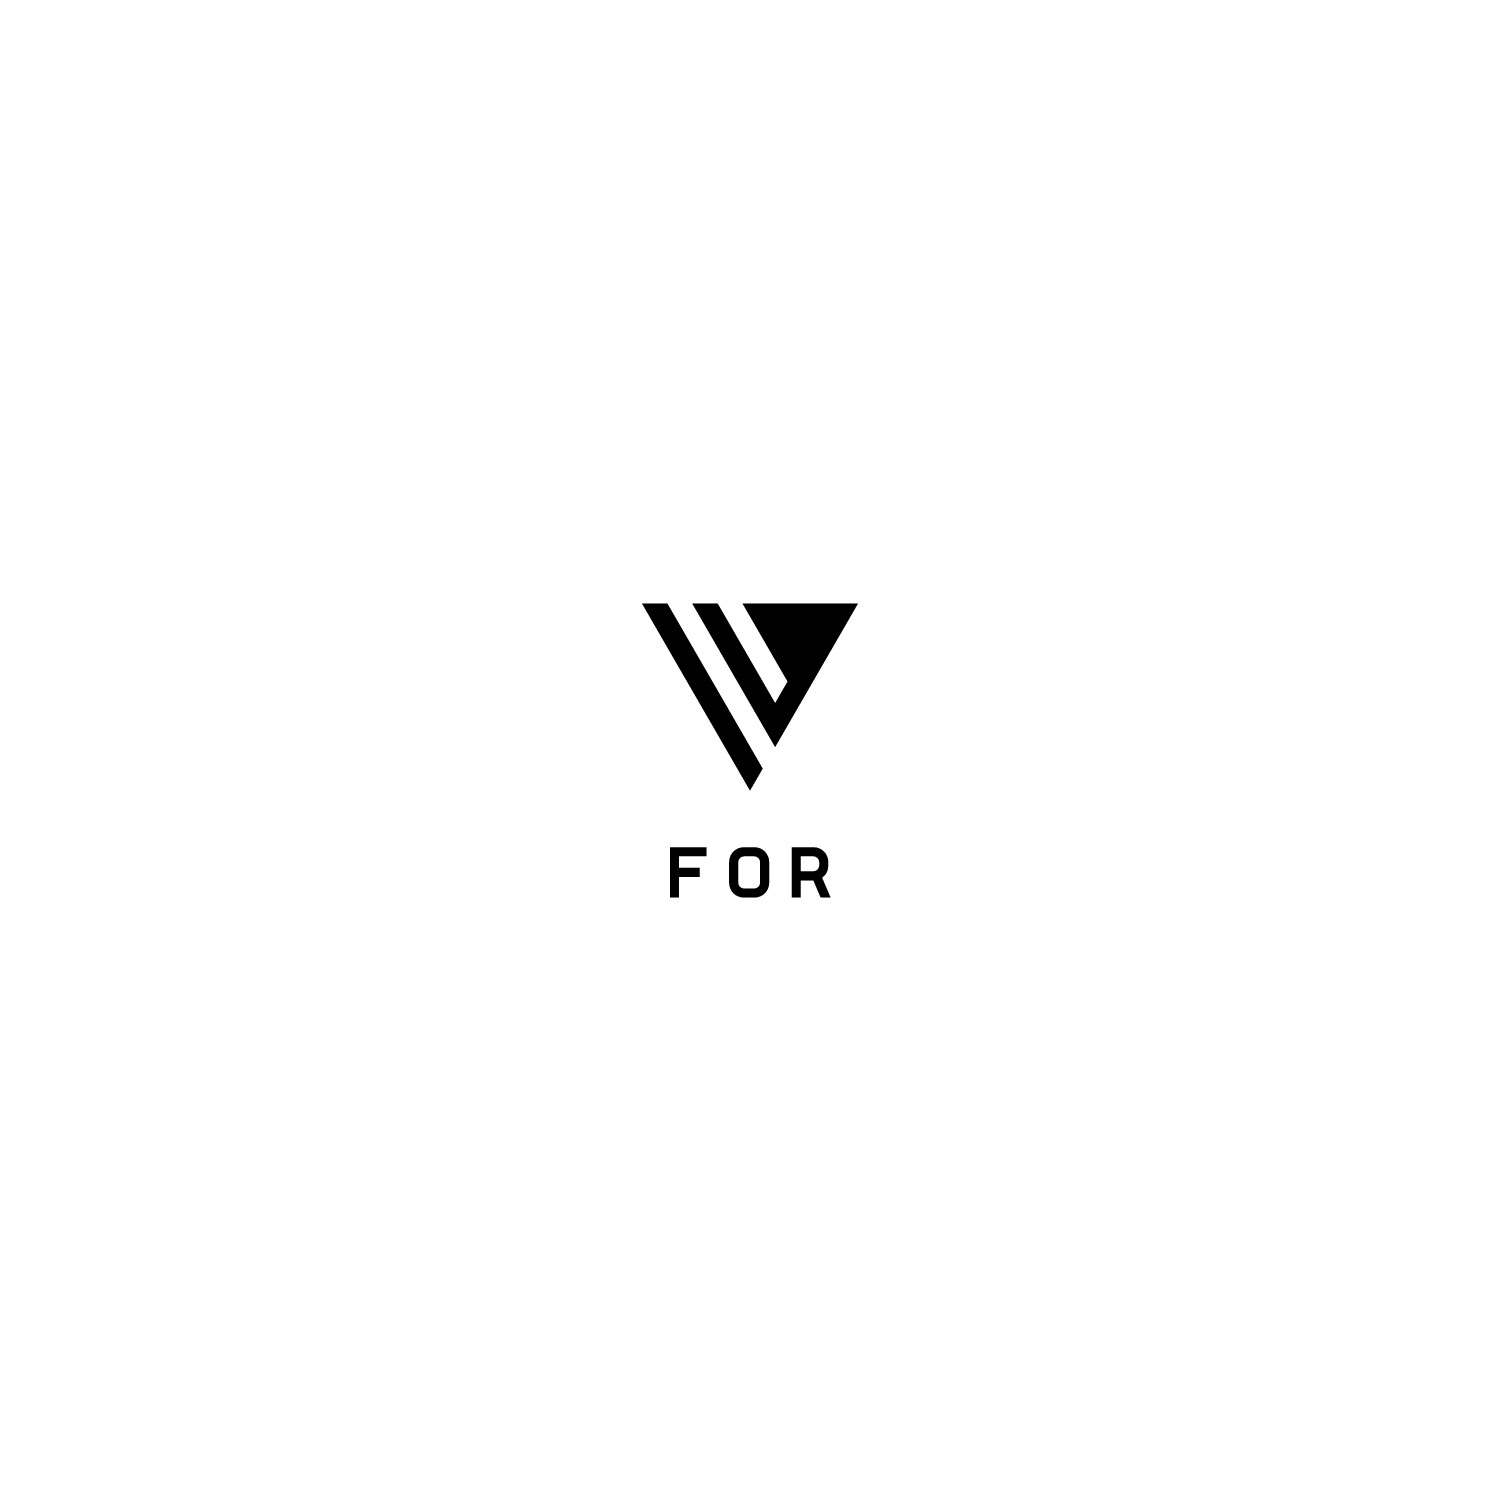 FOR apparel needs a creative sleek logo for it's lifestyle clothing brand. Are you up FOR it?